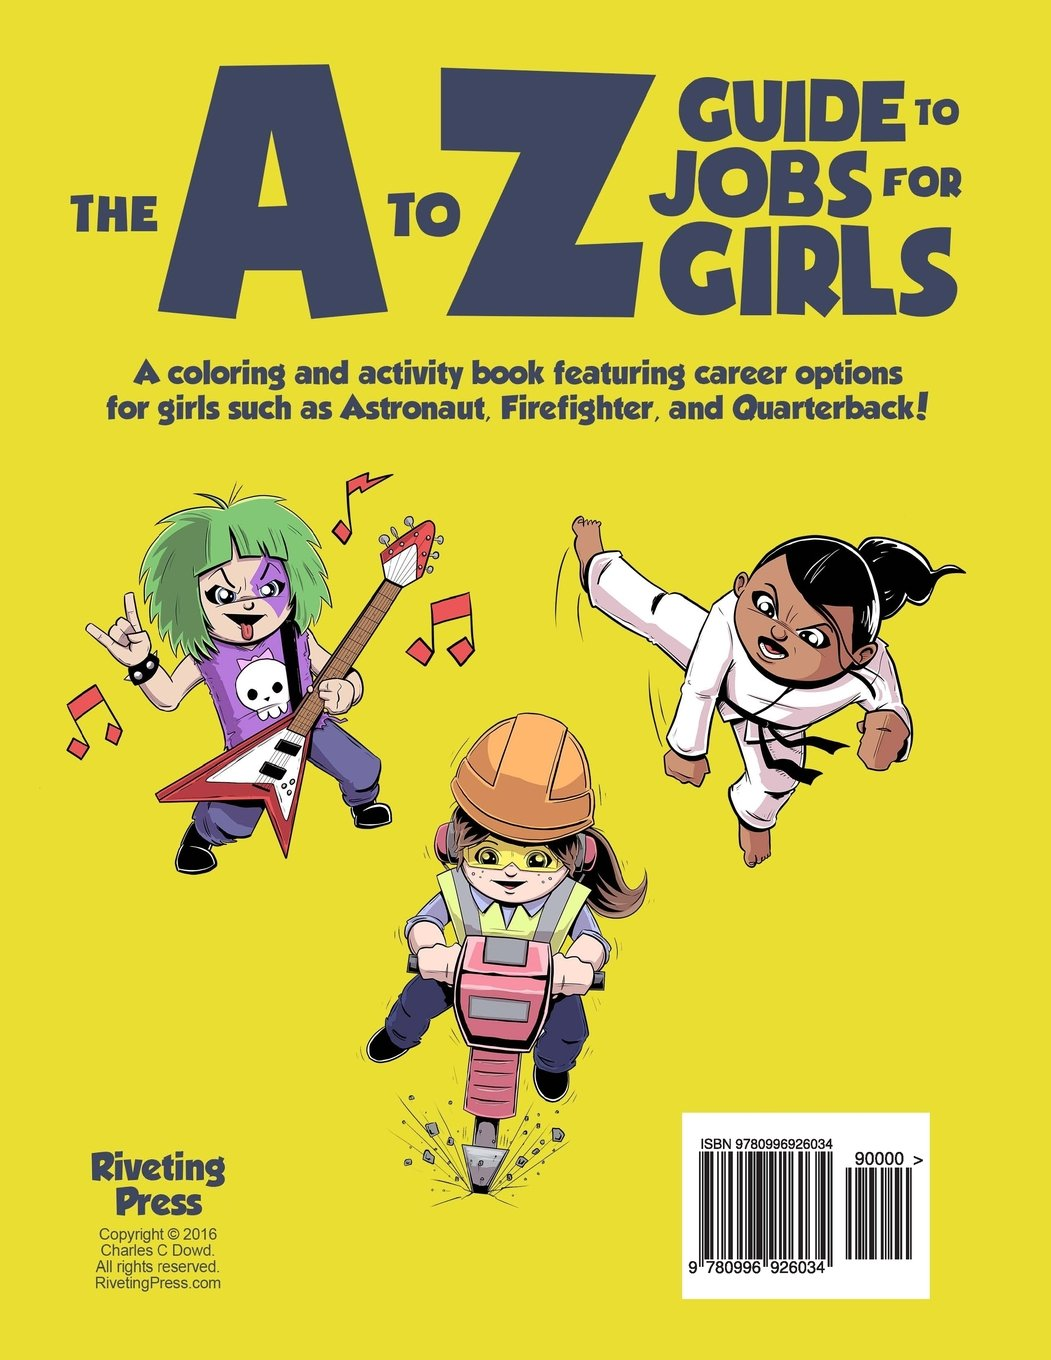 Coloring book jobs - Amazon Com The A To Z Guide To Jobs For Girls Coloring Activity Book 9780996926034 Charles C Dowd Books